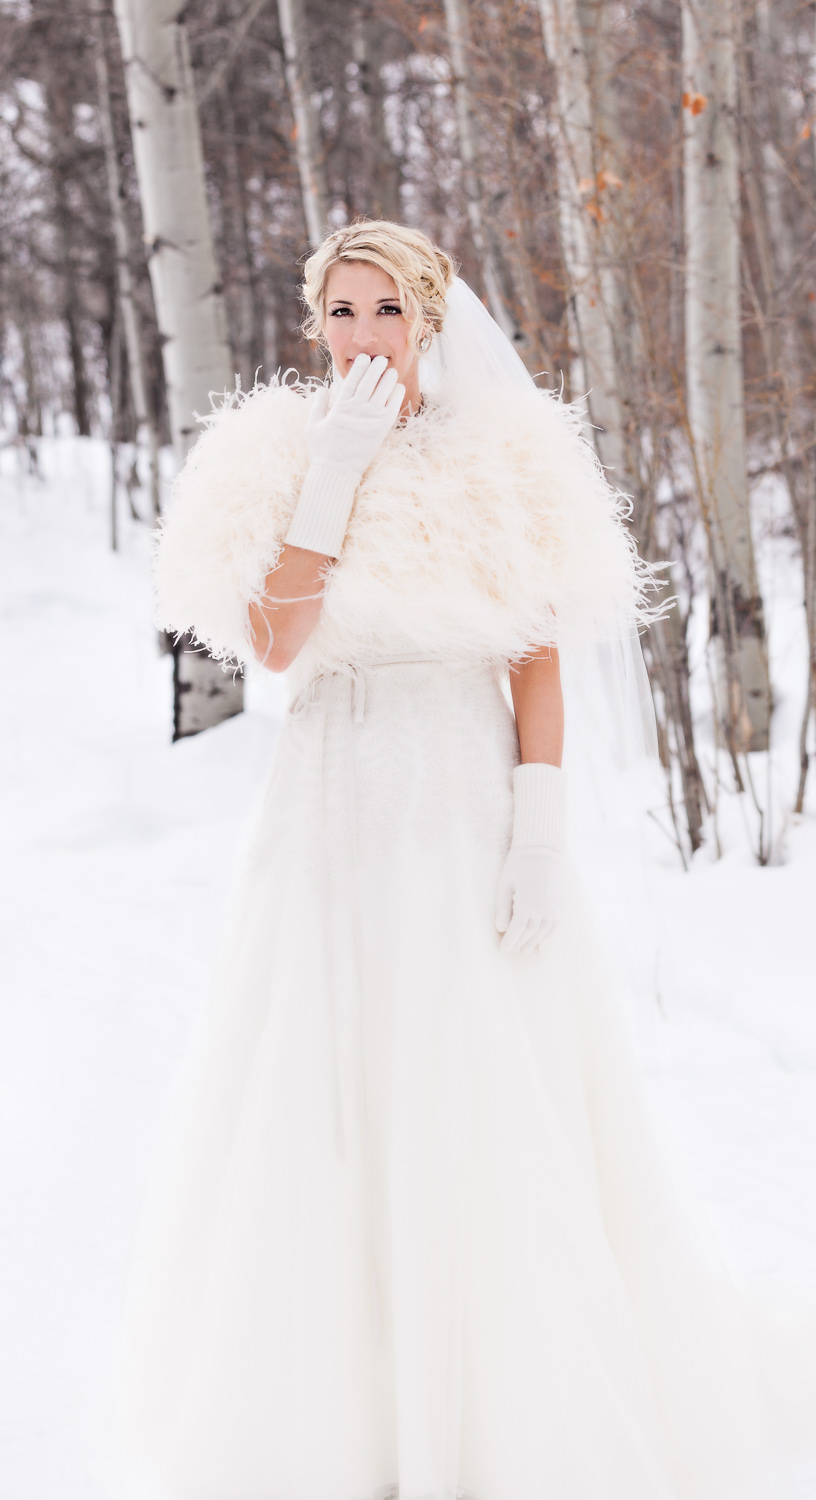 big-sky-winter-wedding-bride-hand-on-mouth.jpg